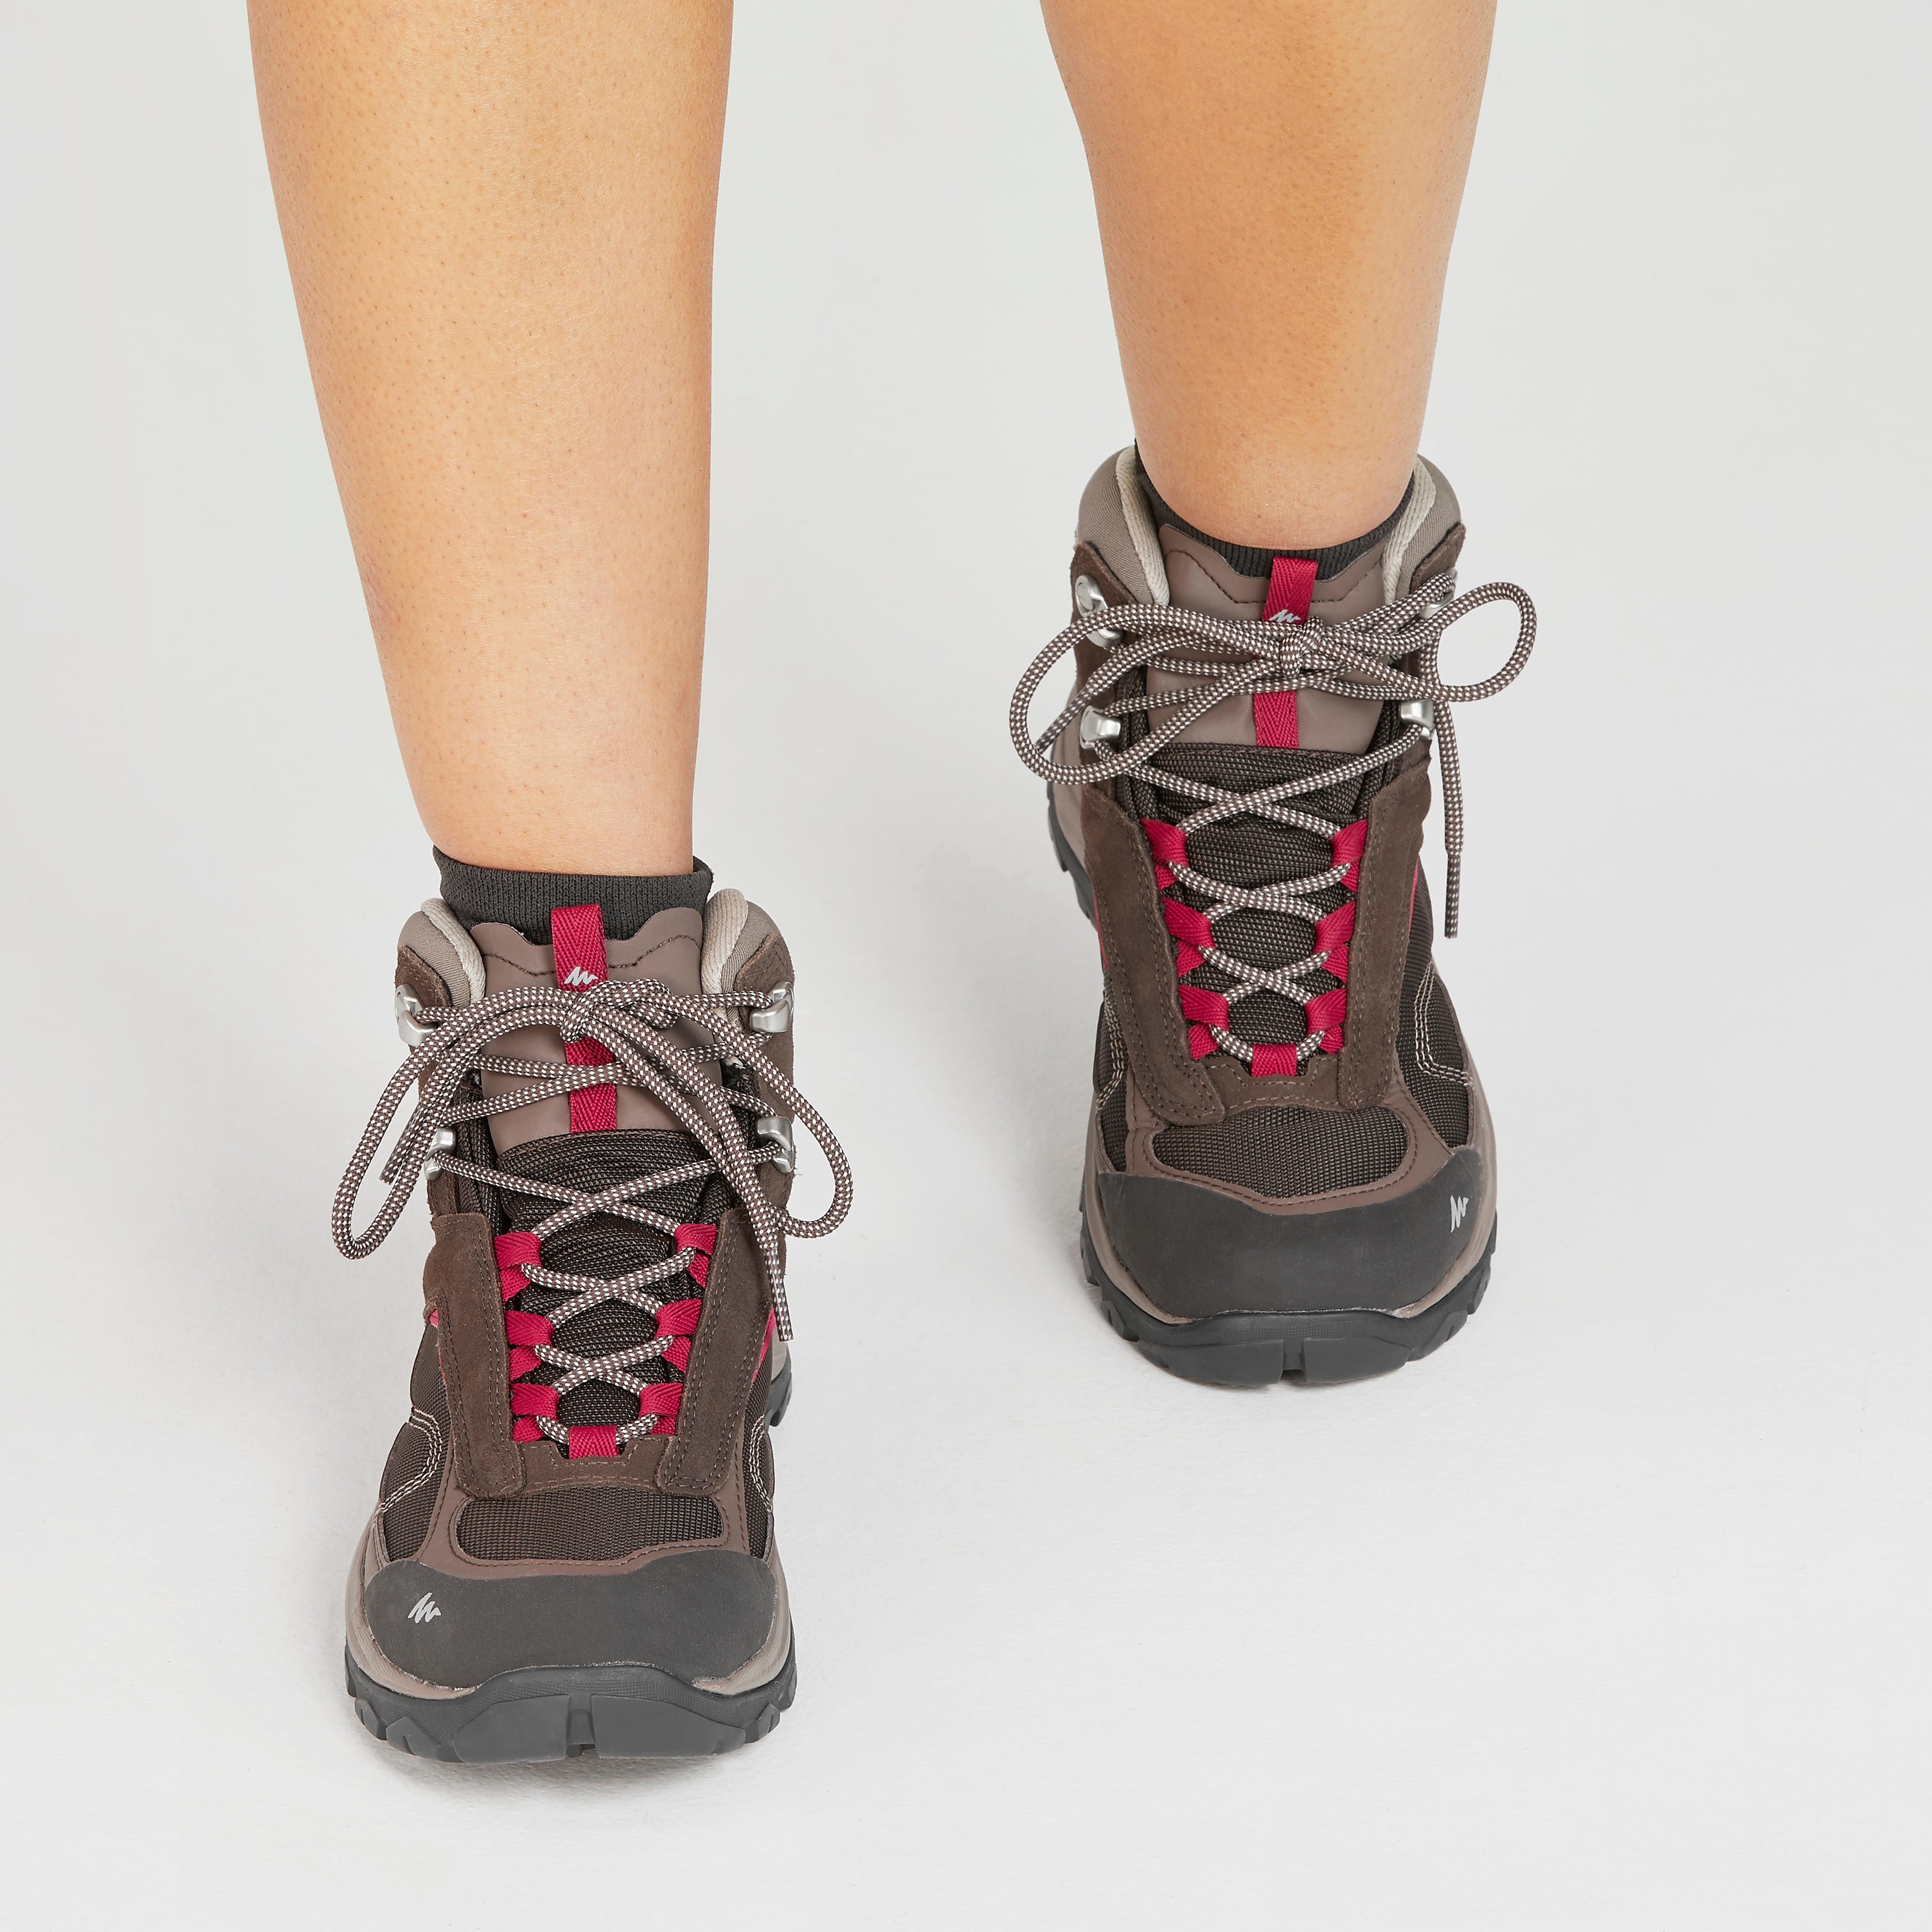 Women's Hiking Shoes MH100 (Mid Ankle) Waterproof - Brown